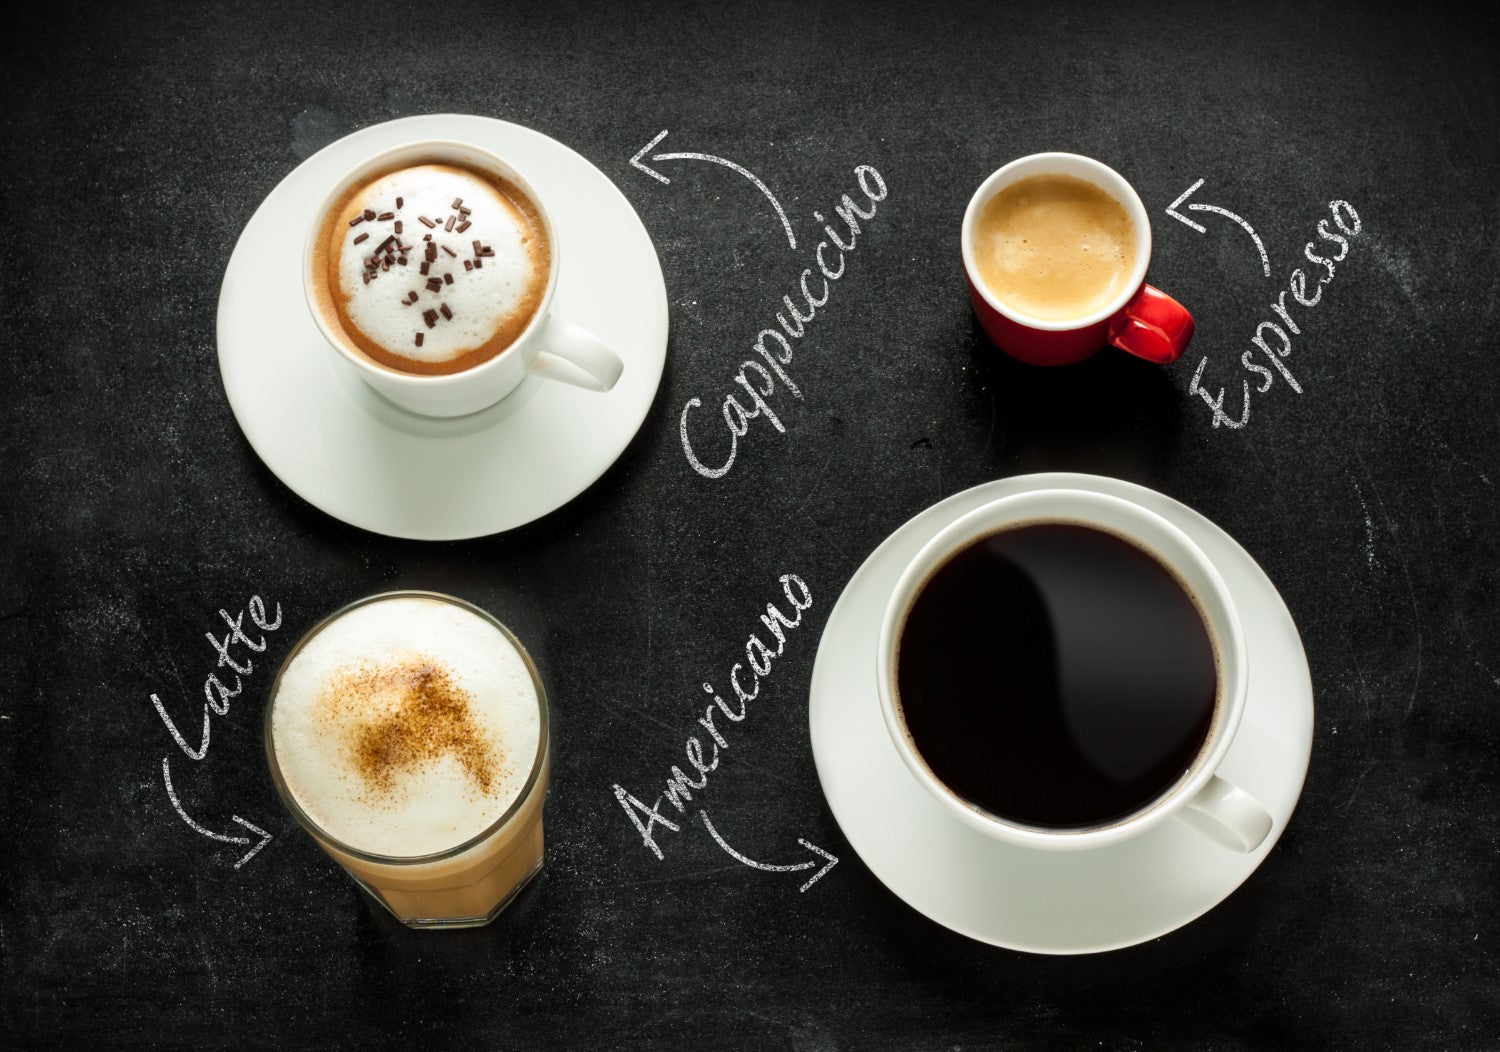 4 different coffee with their name